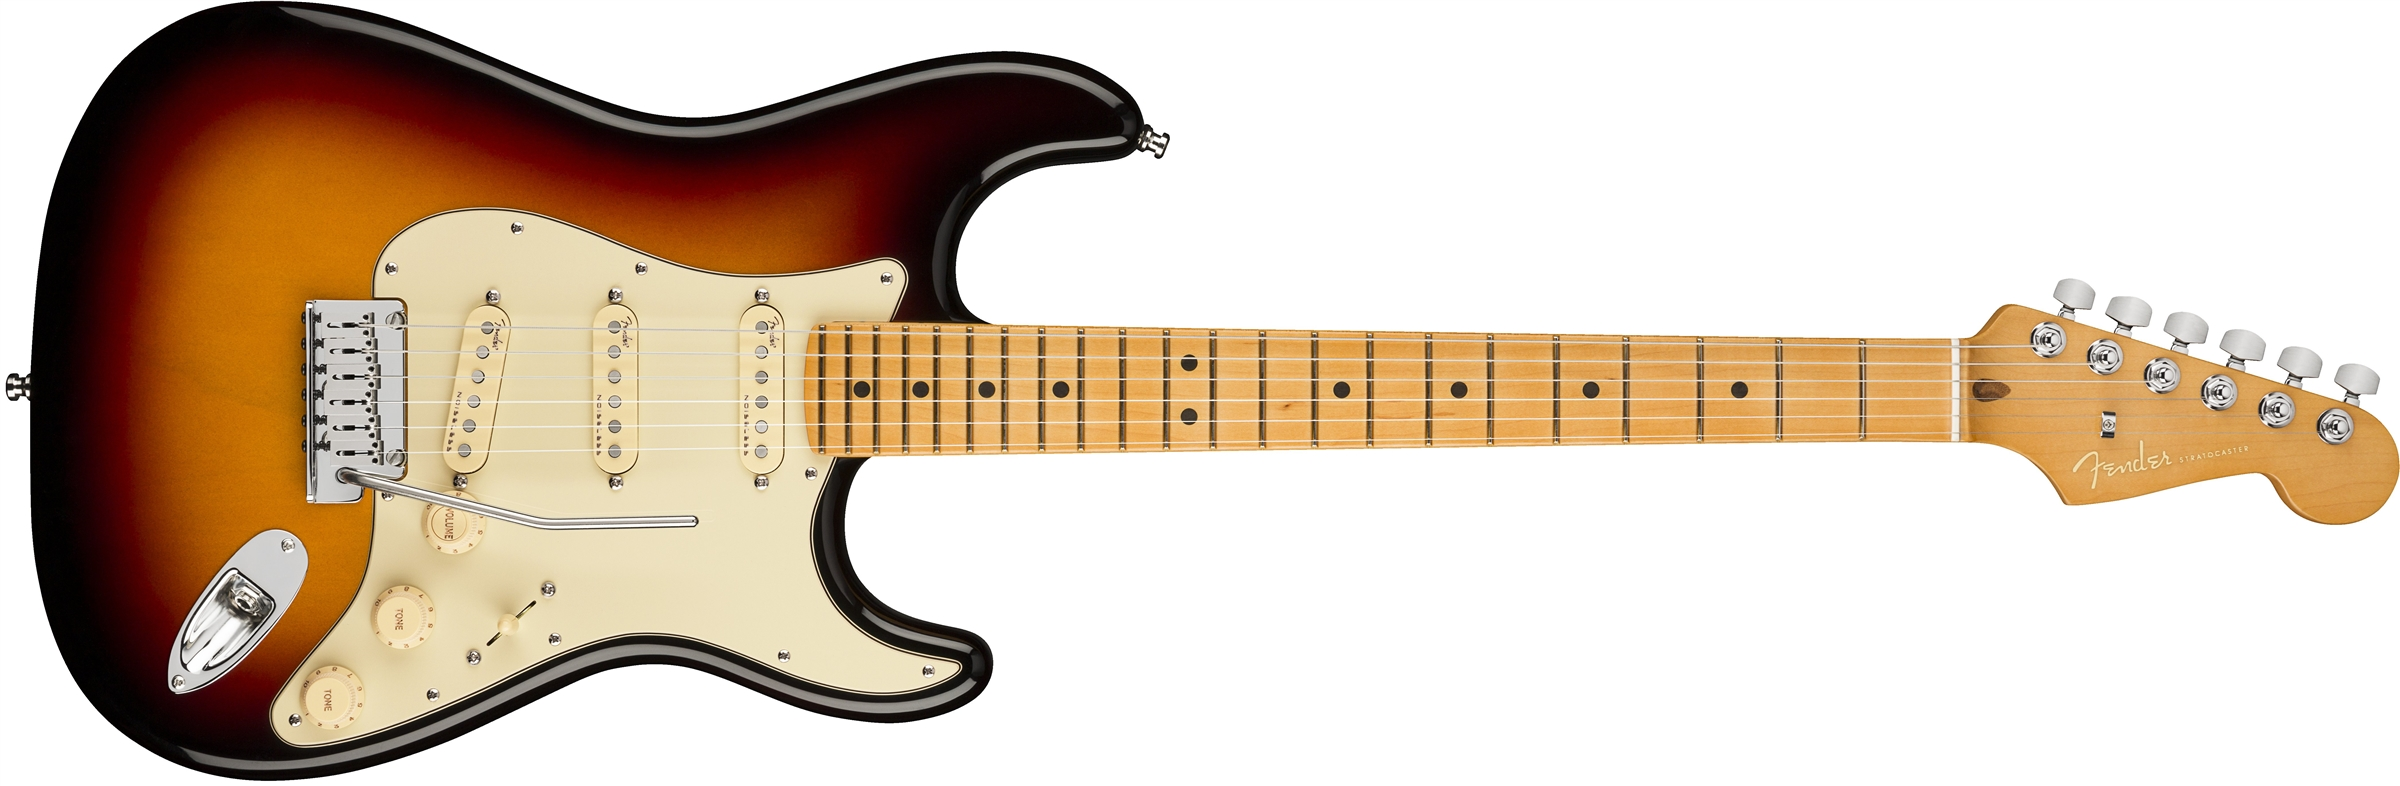 New Guitars: Fender Unveils New American Ultra Series ... on jazz bass control assembly diagrams, fender 5 string bass, fender esquire wiring, fender telecaster three-way diagram, fender 5-way switch diagram, fender wiring schematic 2 pickups 1 volume 2 tone 5-way switch, fender floyd rose, jaguar electrical diagrams, fender stratocaster wiring, fender p bass electronics diagram, fender champ wiring, fender s1 switch wiring, fender princeton tube amp layout diagrams, fender bass amps, fender tele plus wiring,